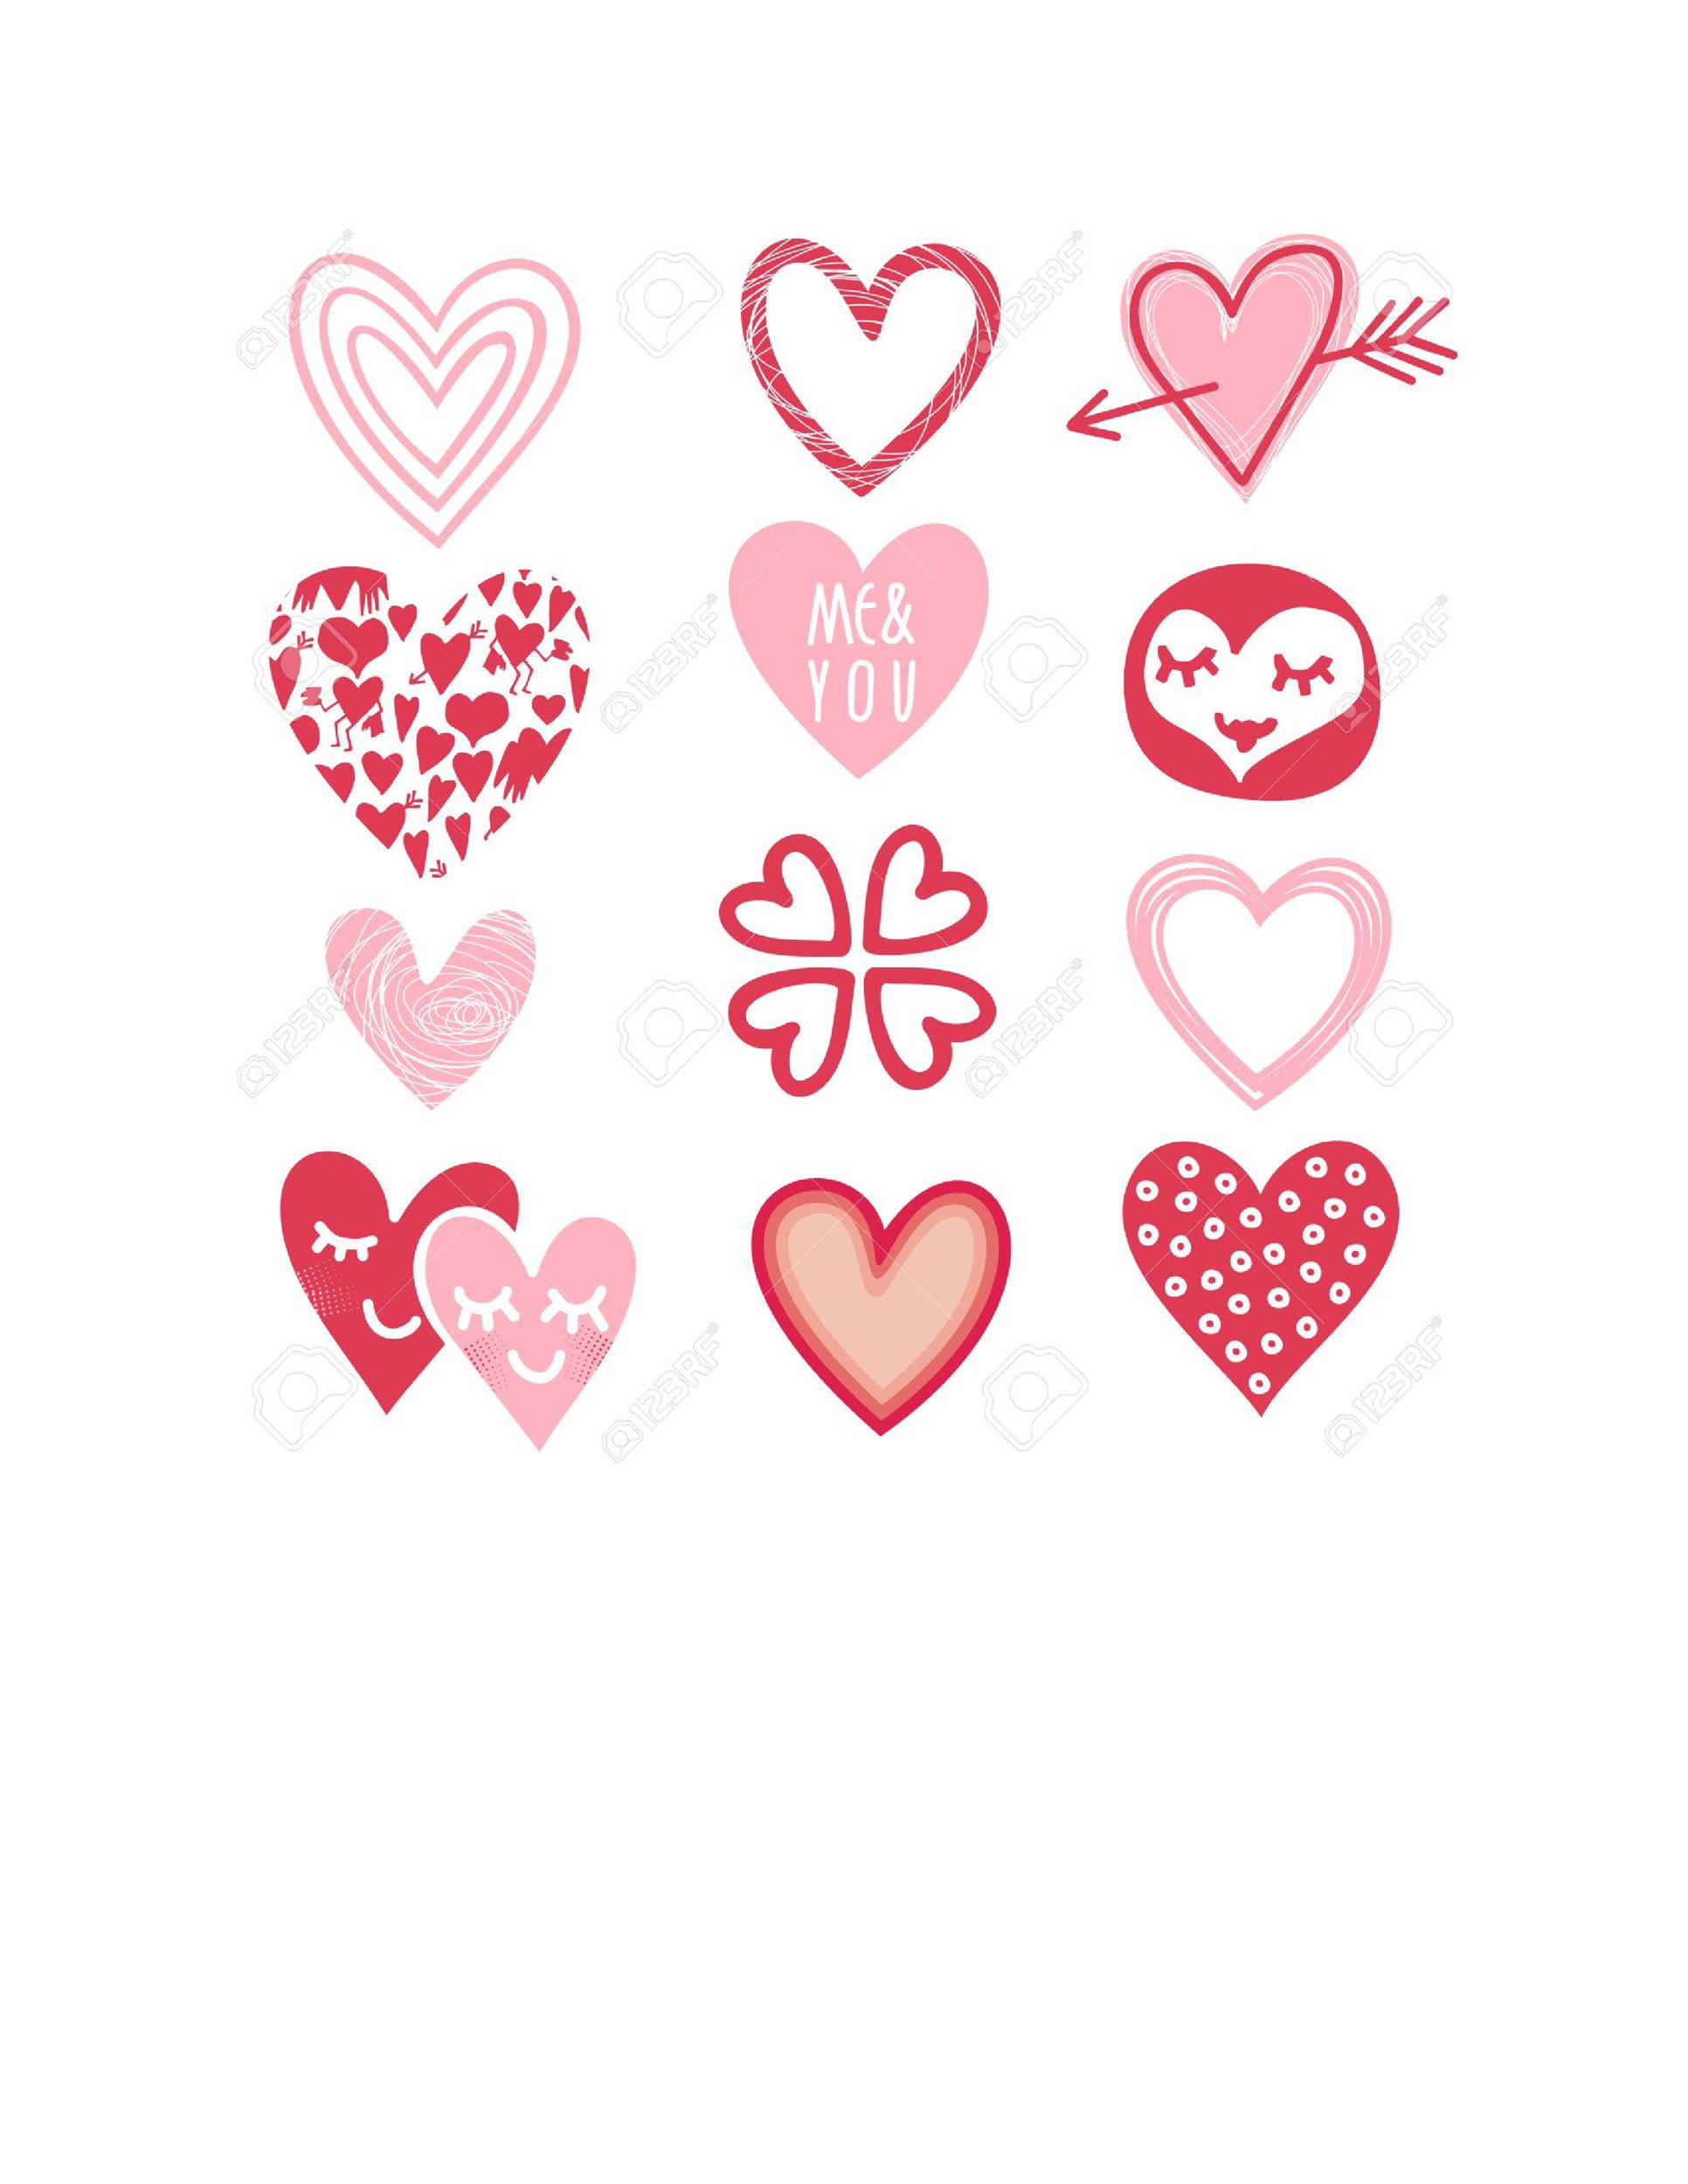 Heart shape Template 23